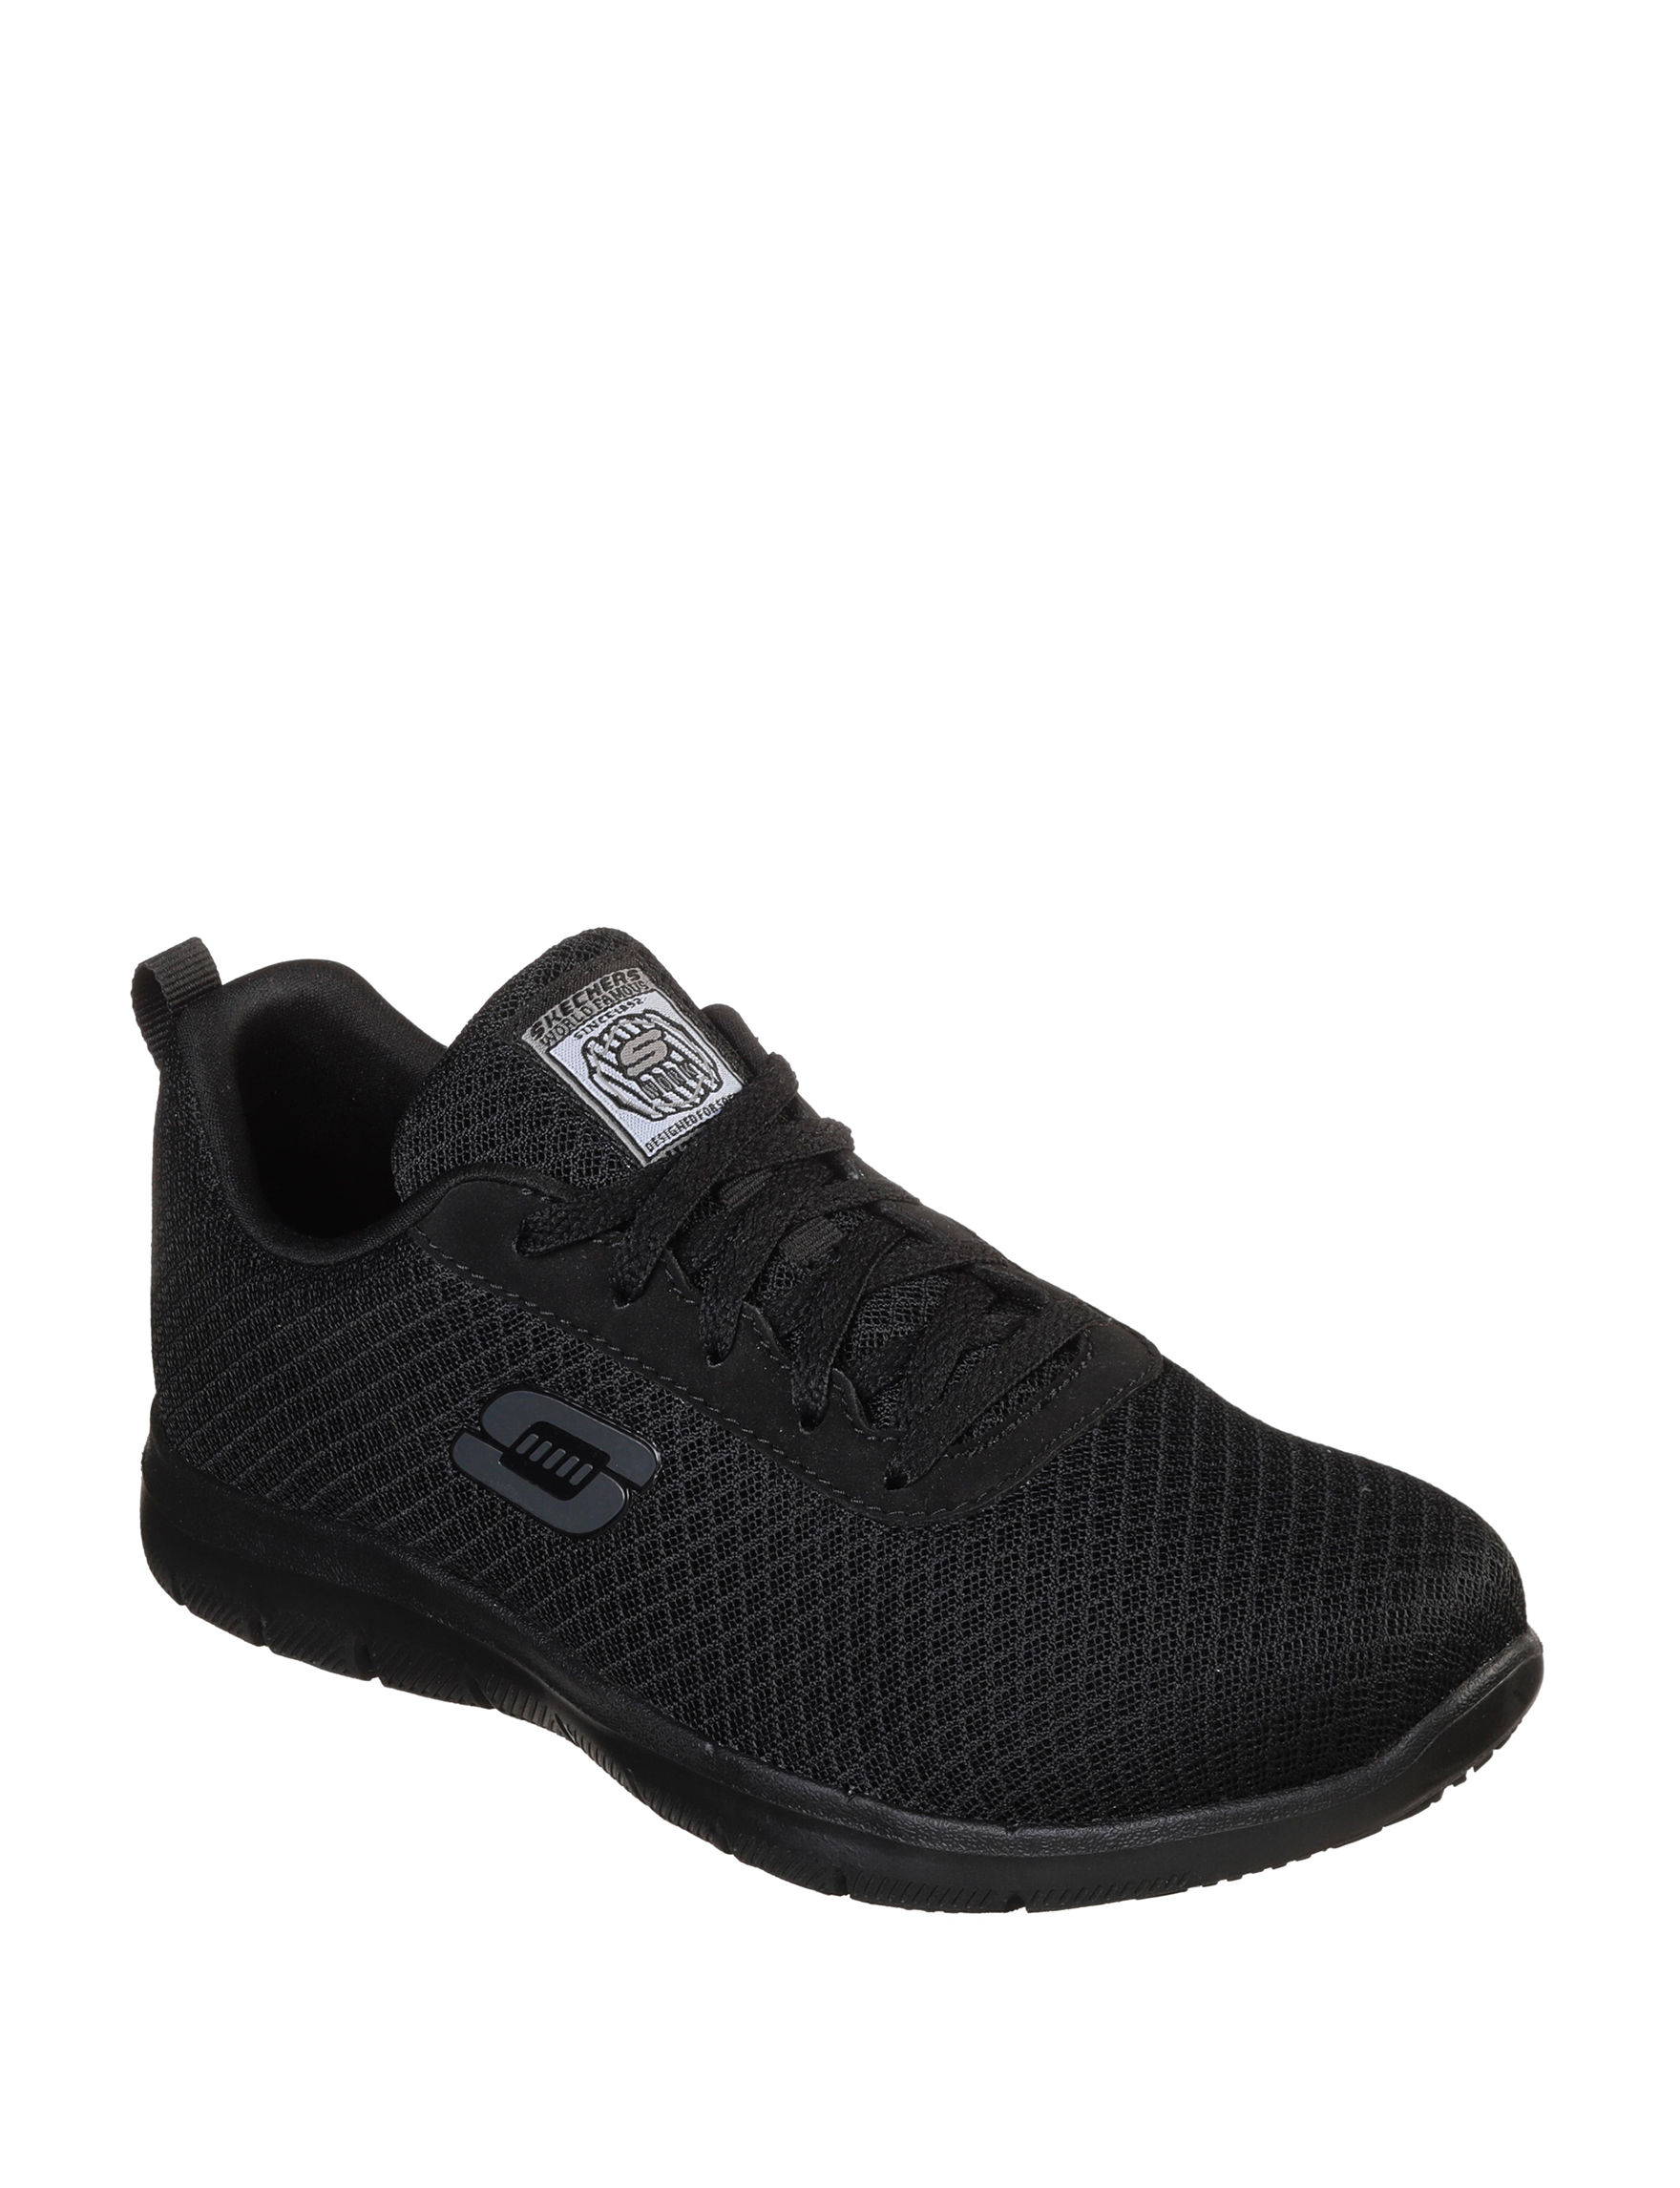 Skechers Black Comfort Shoes Slip Resistant